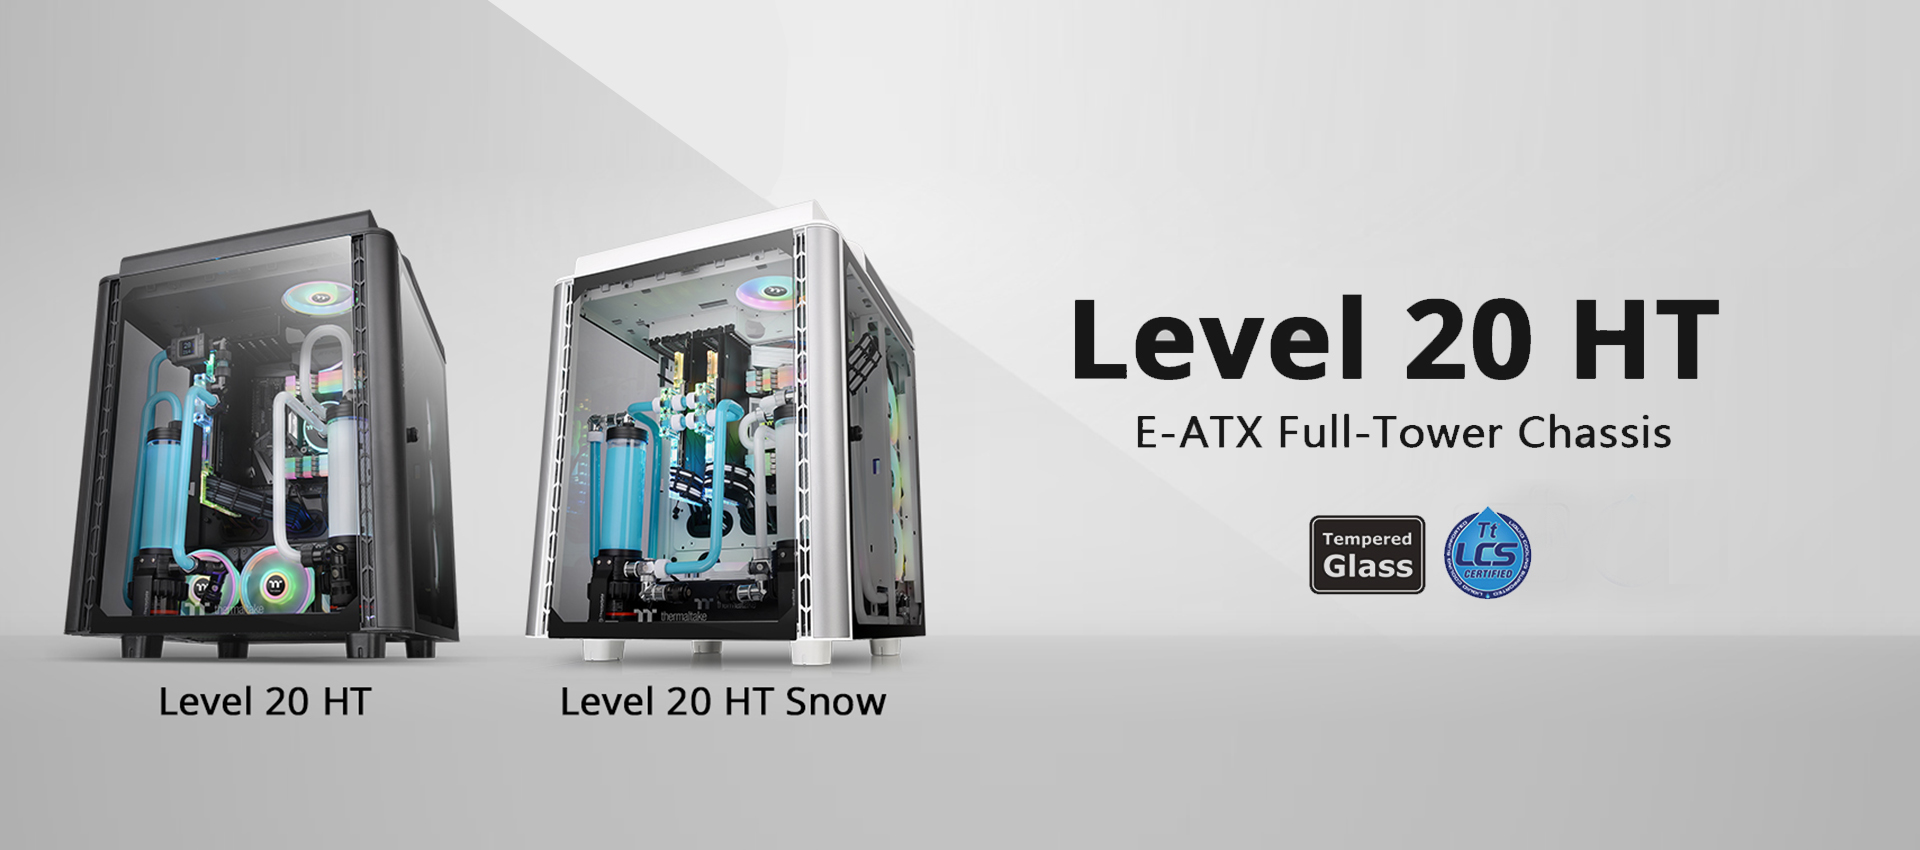 Level 20 HT Snow Edition